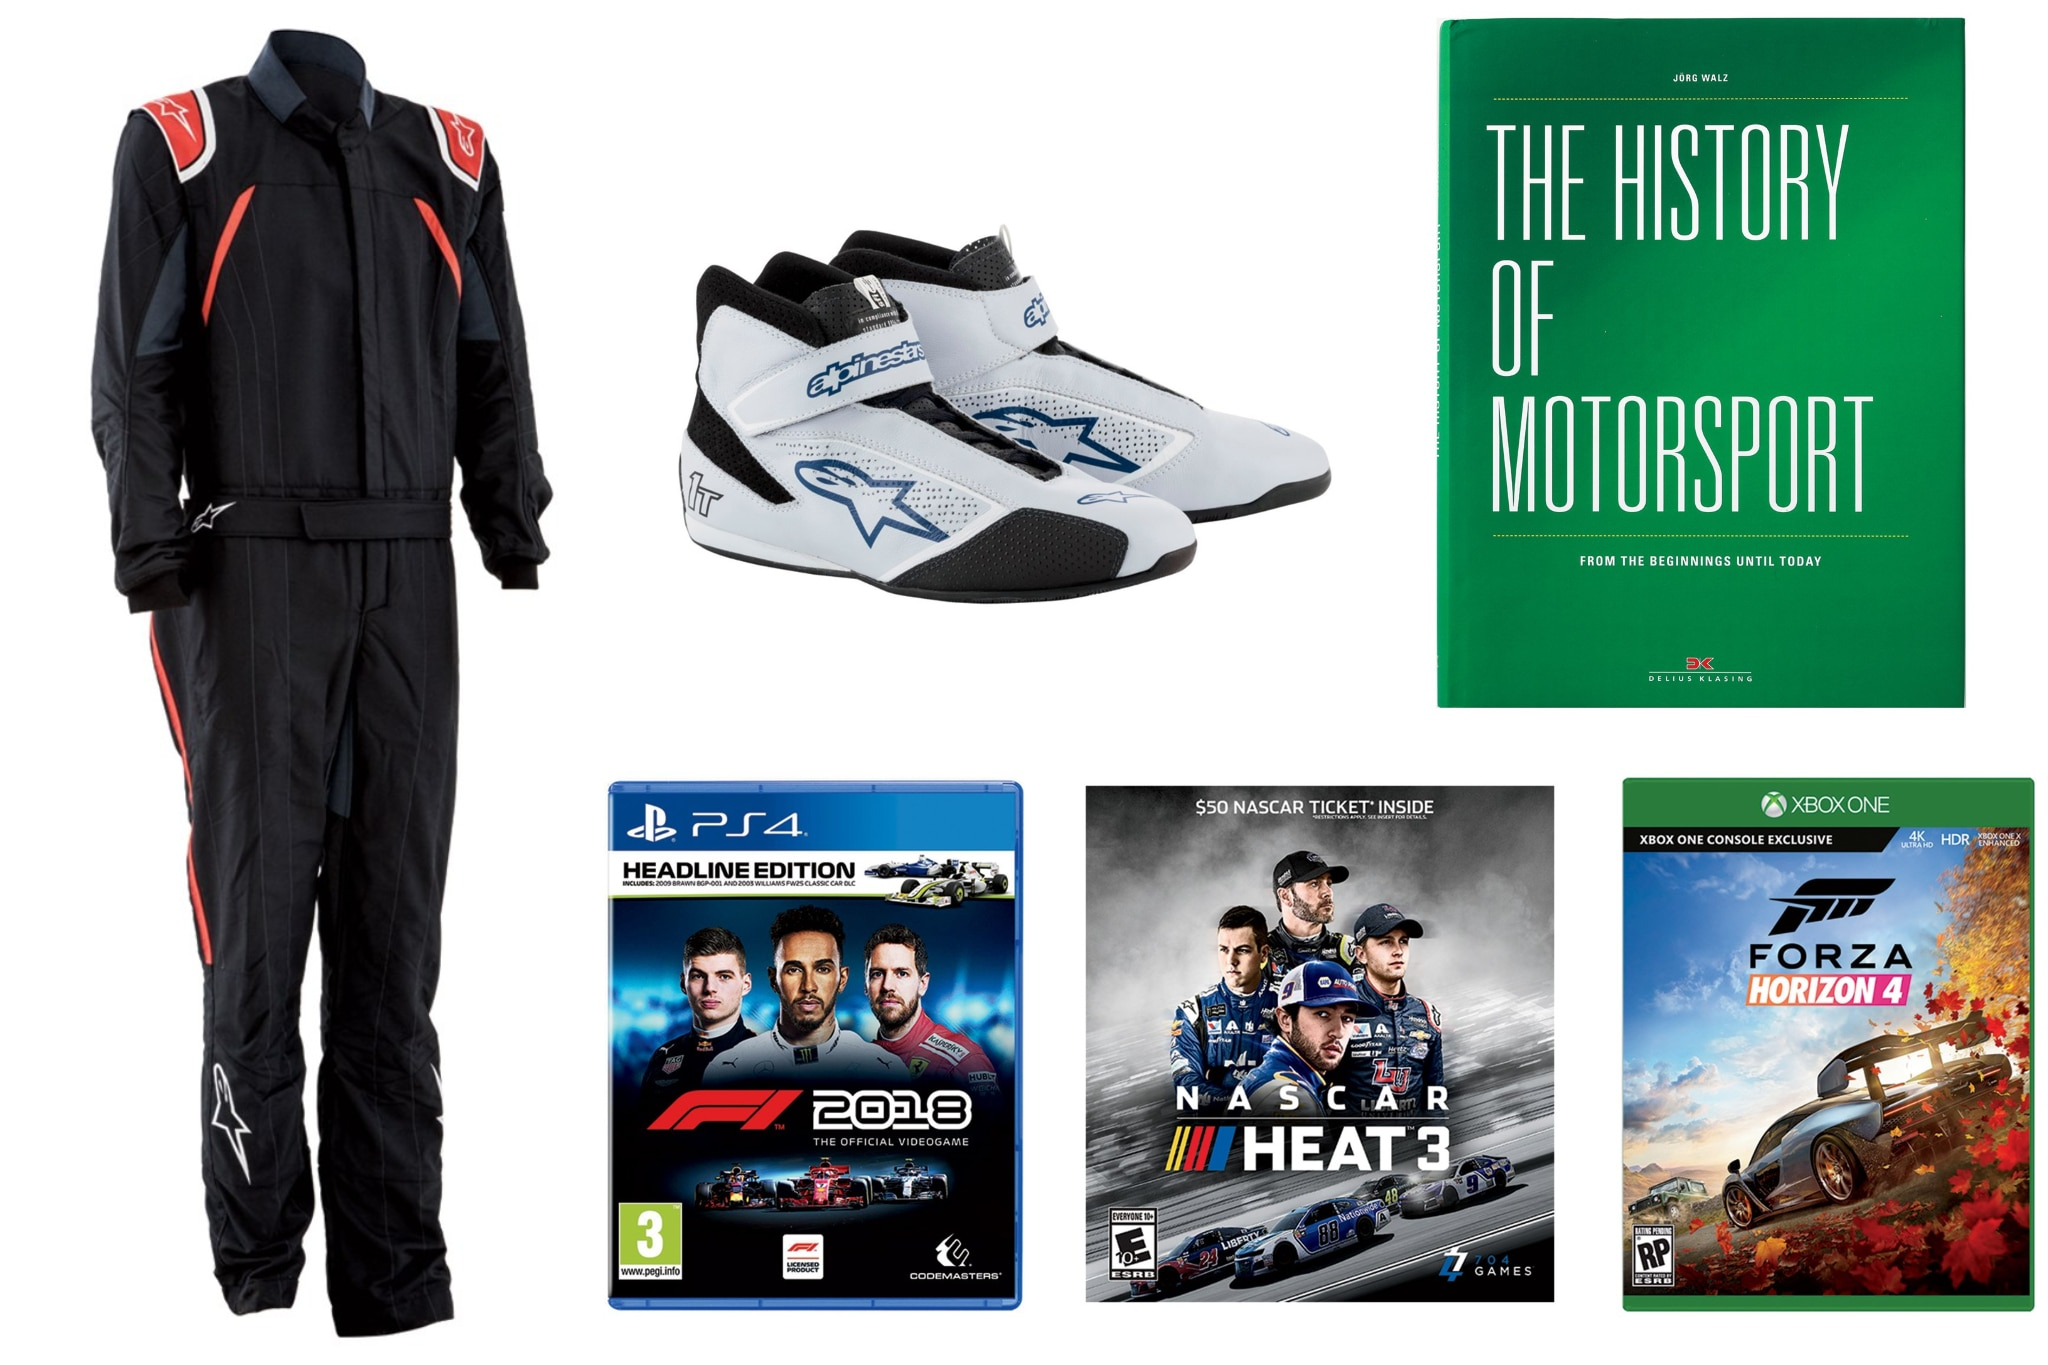 Motorsports Gift Guide Lead